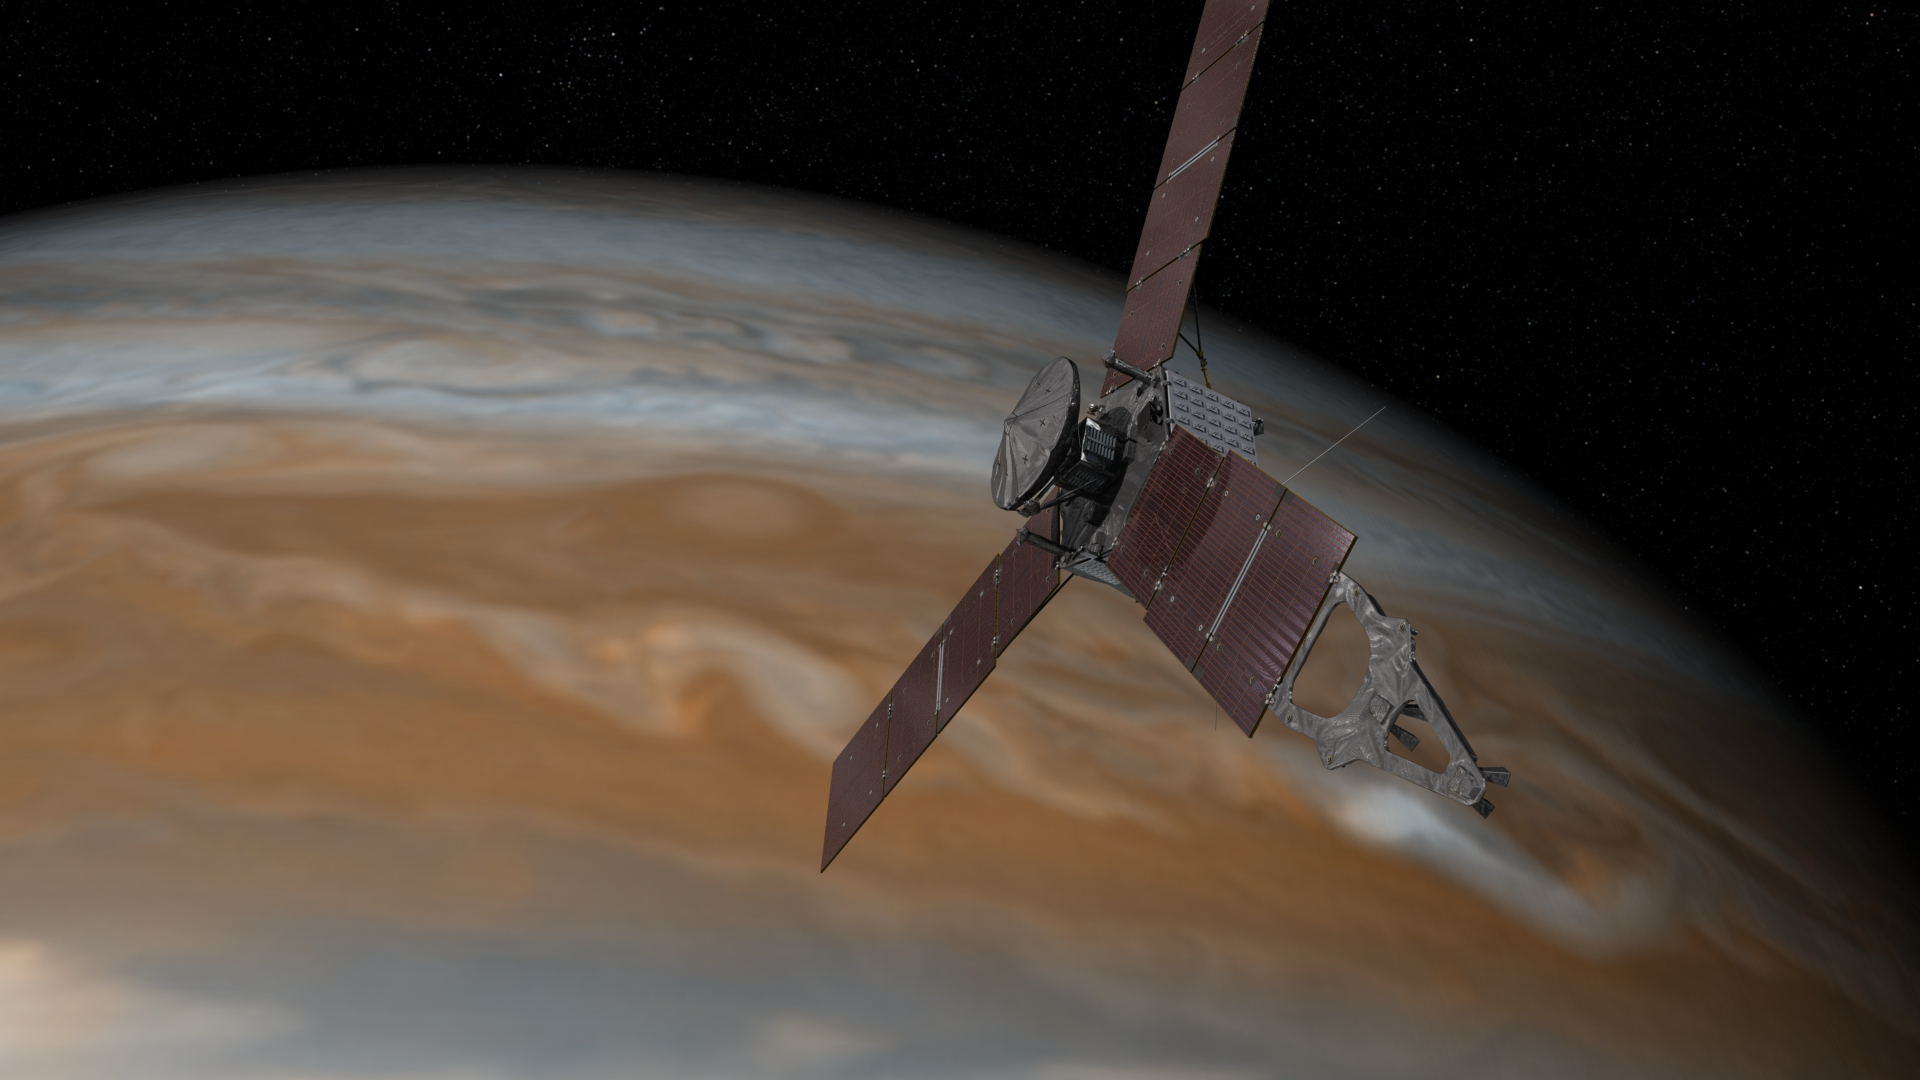 Latest News About the Juno Mission to Jupiter